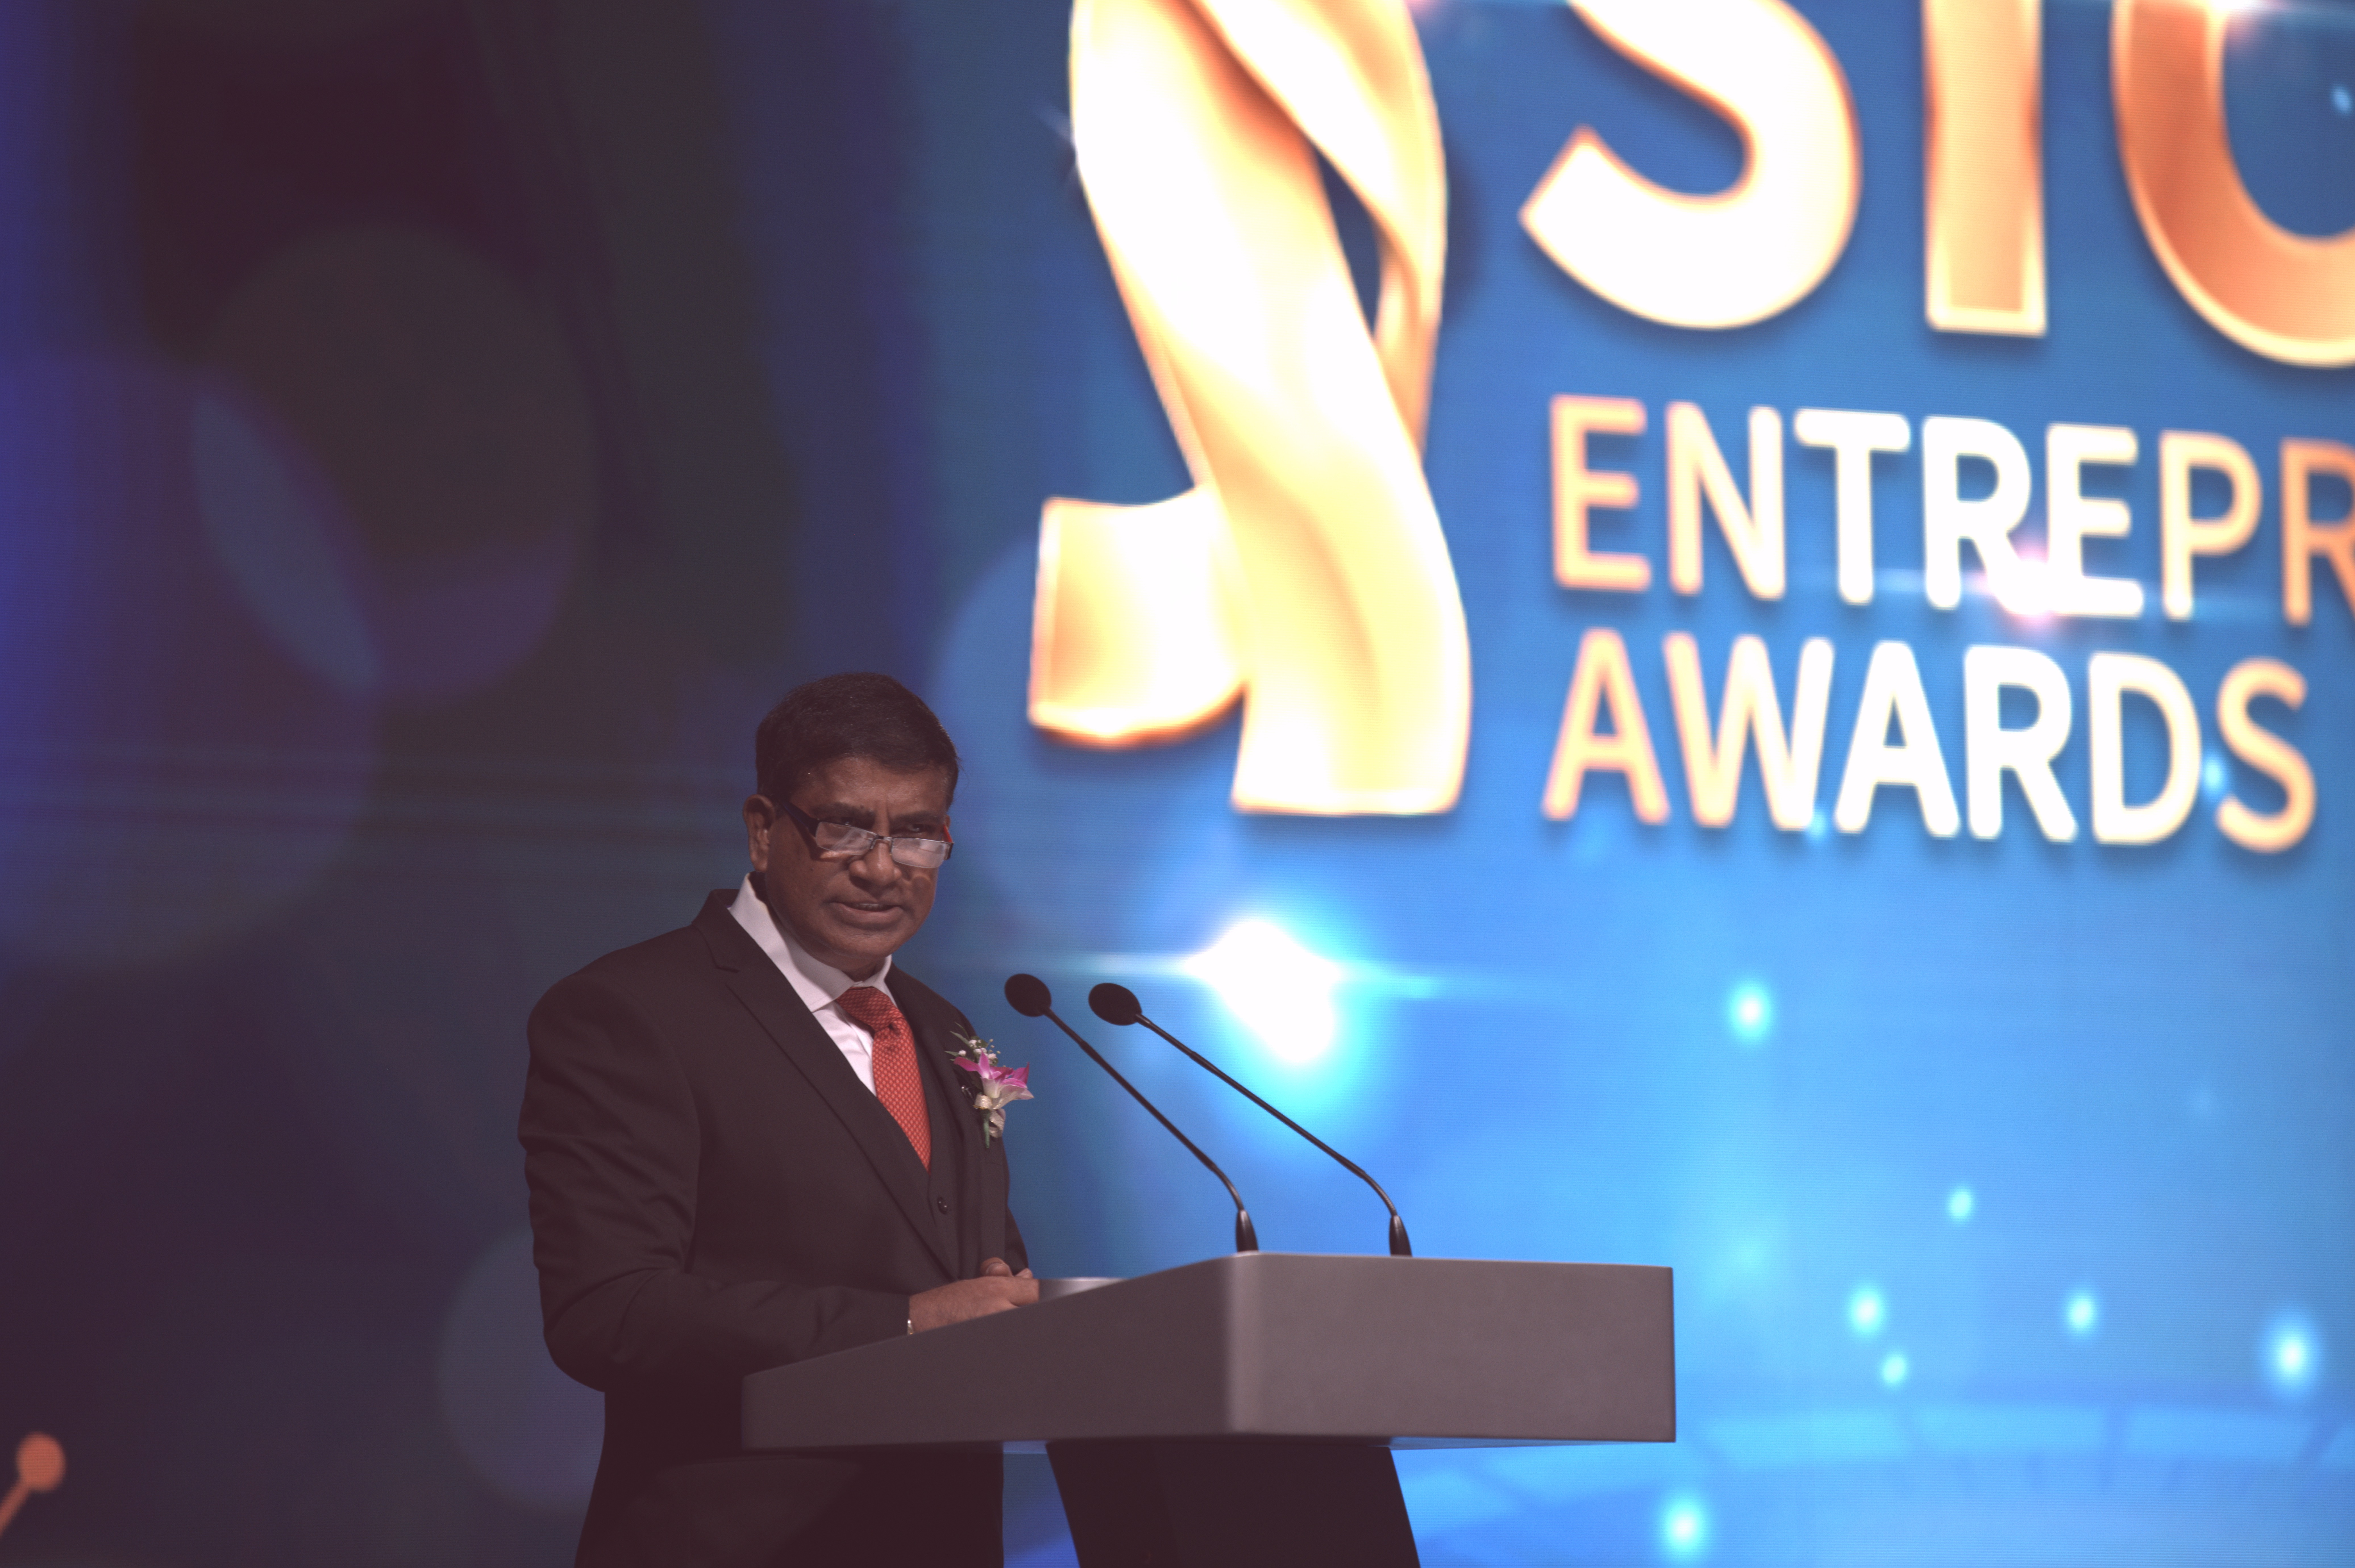 SICCI Chairman, Dr. T. Chandroo giving a speech at the 95th anniversary gala dinner and award ceremony at Marina Bay Sands, Singapore on 9th Novermber 2019. Photo Courtesy: SICCI